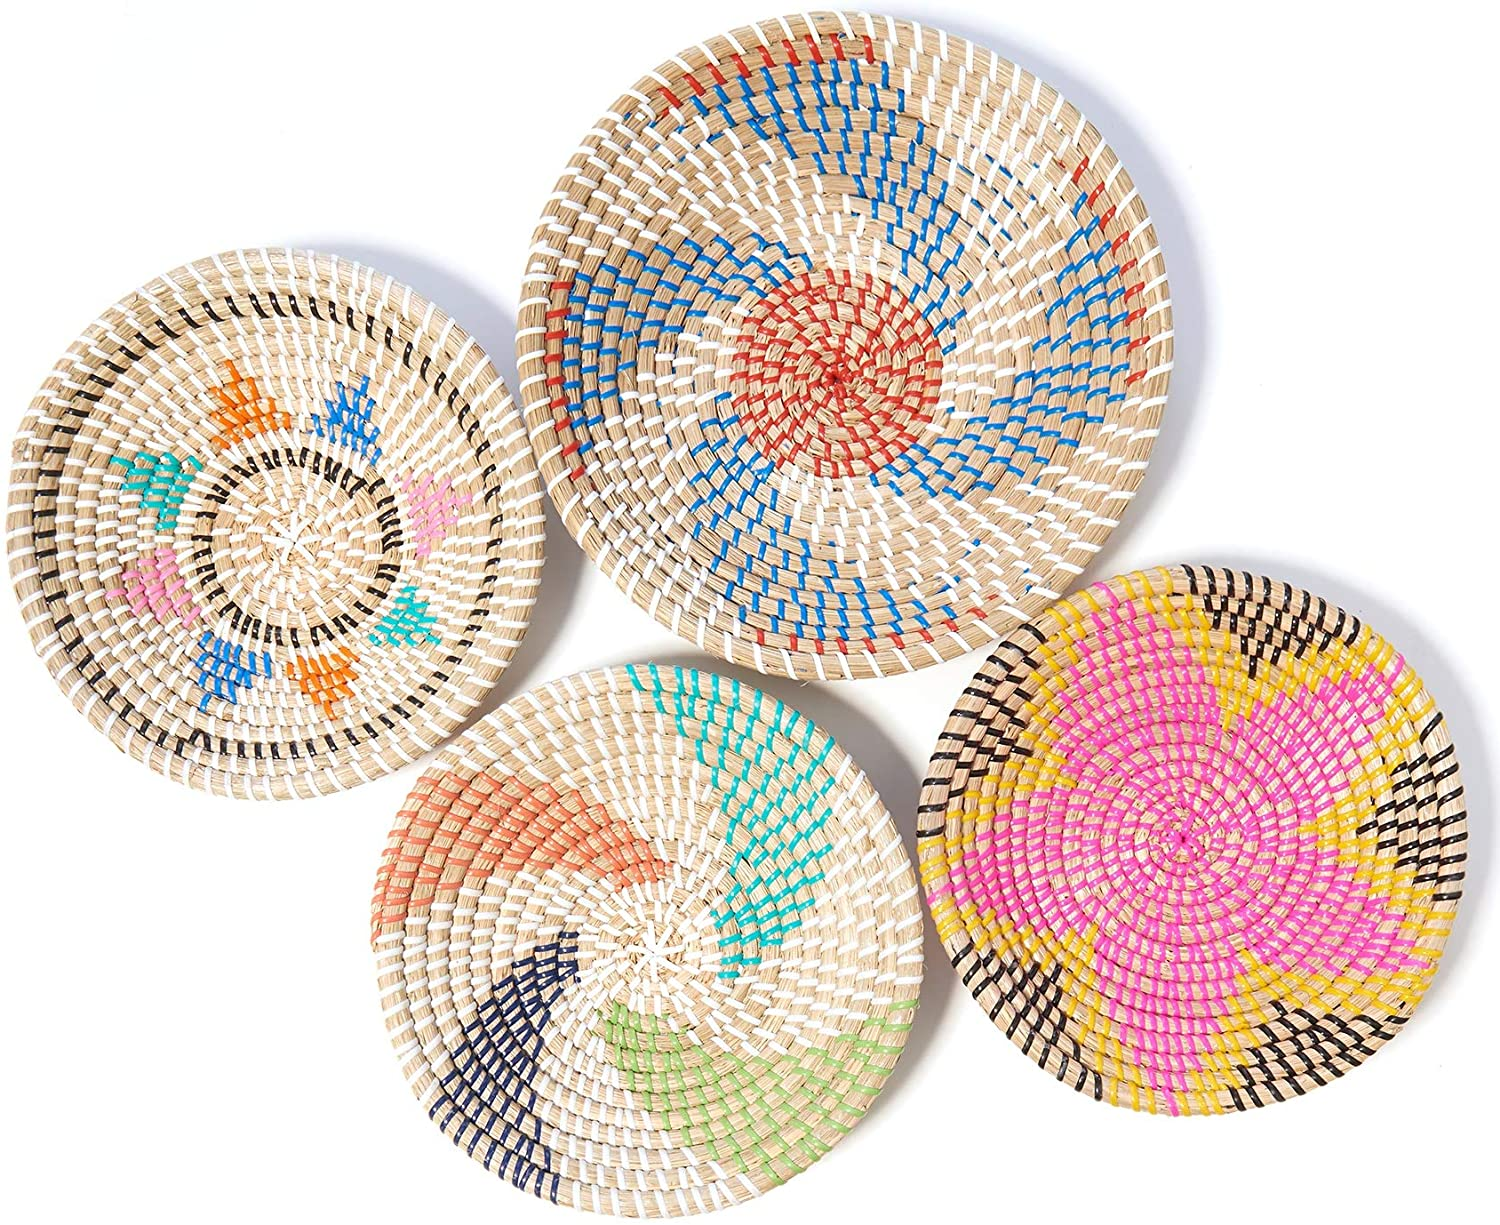 Woven Baskets - Perfect for Hanging Wall Decor or Storage - Set of 4 - Create Your Basket Wall Art Gallery Wall - Handmade in Natural Seagrass - Boho, Rustic, Traditional